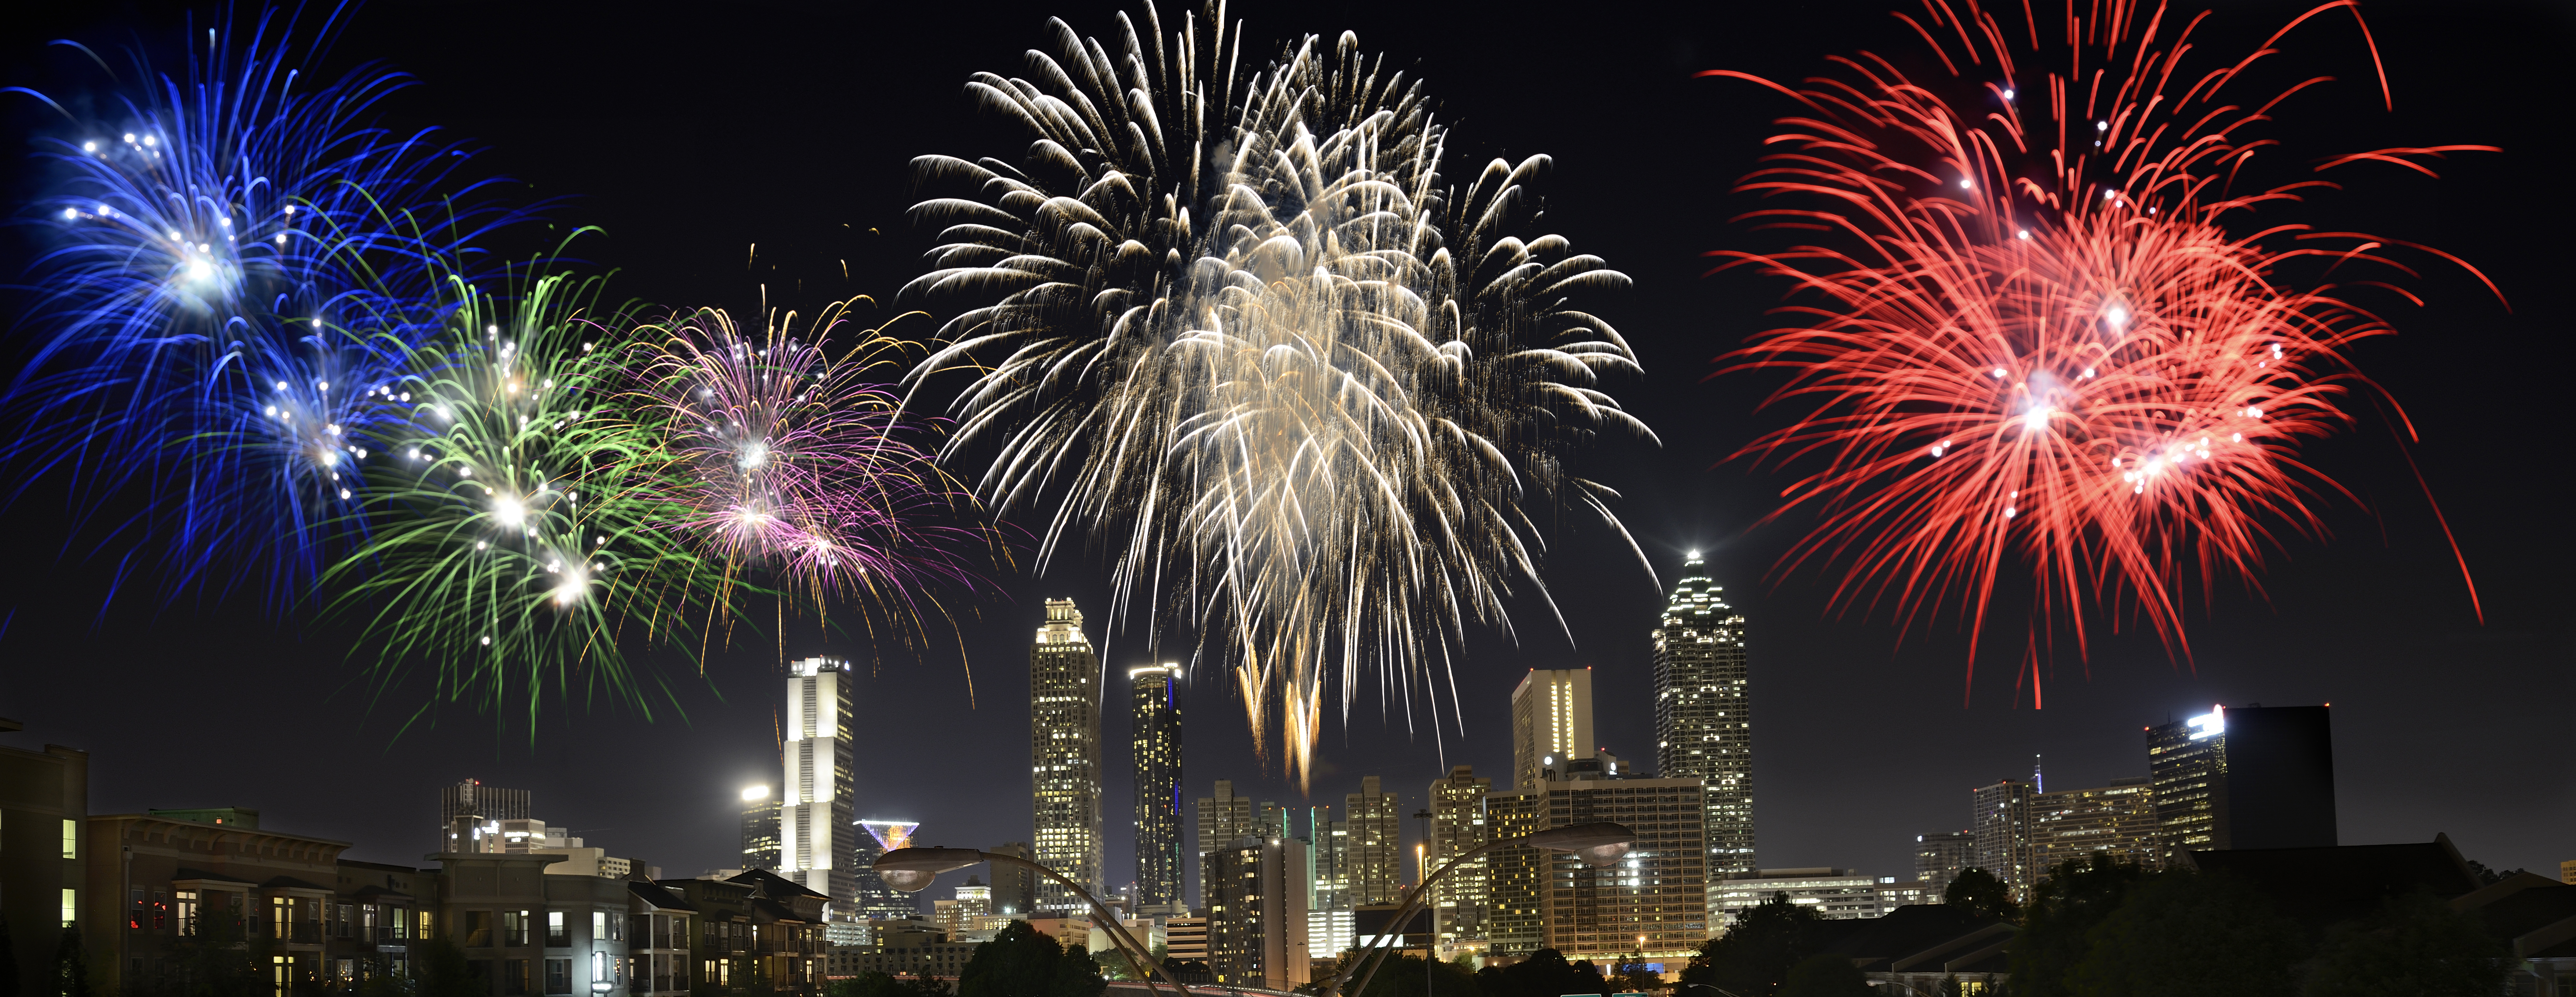 Best Fourth of July Destinations